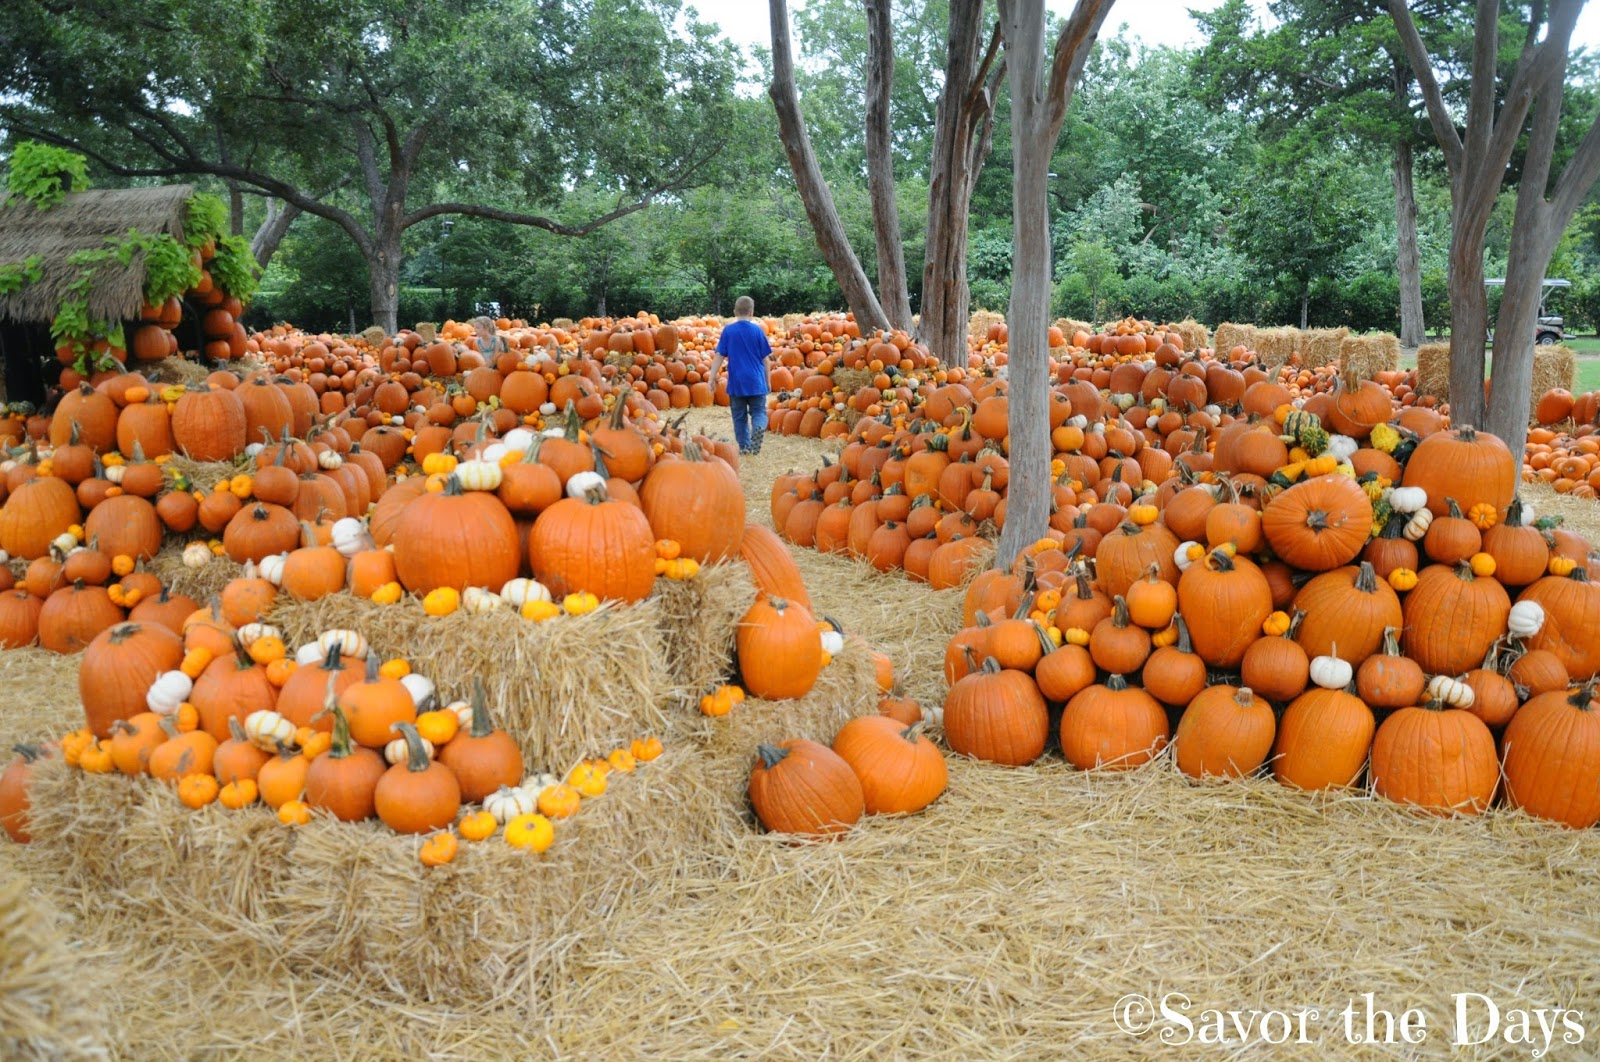 Giant piles of pumpkins